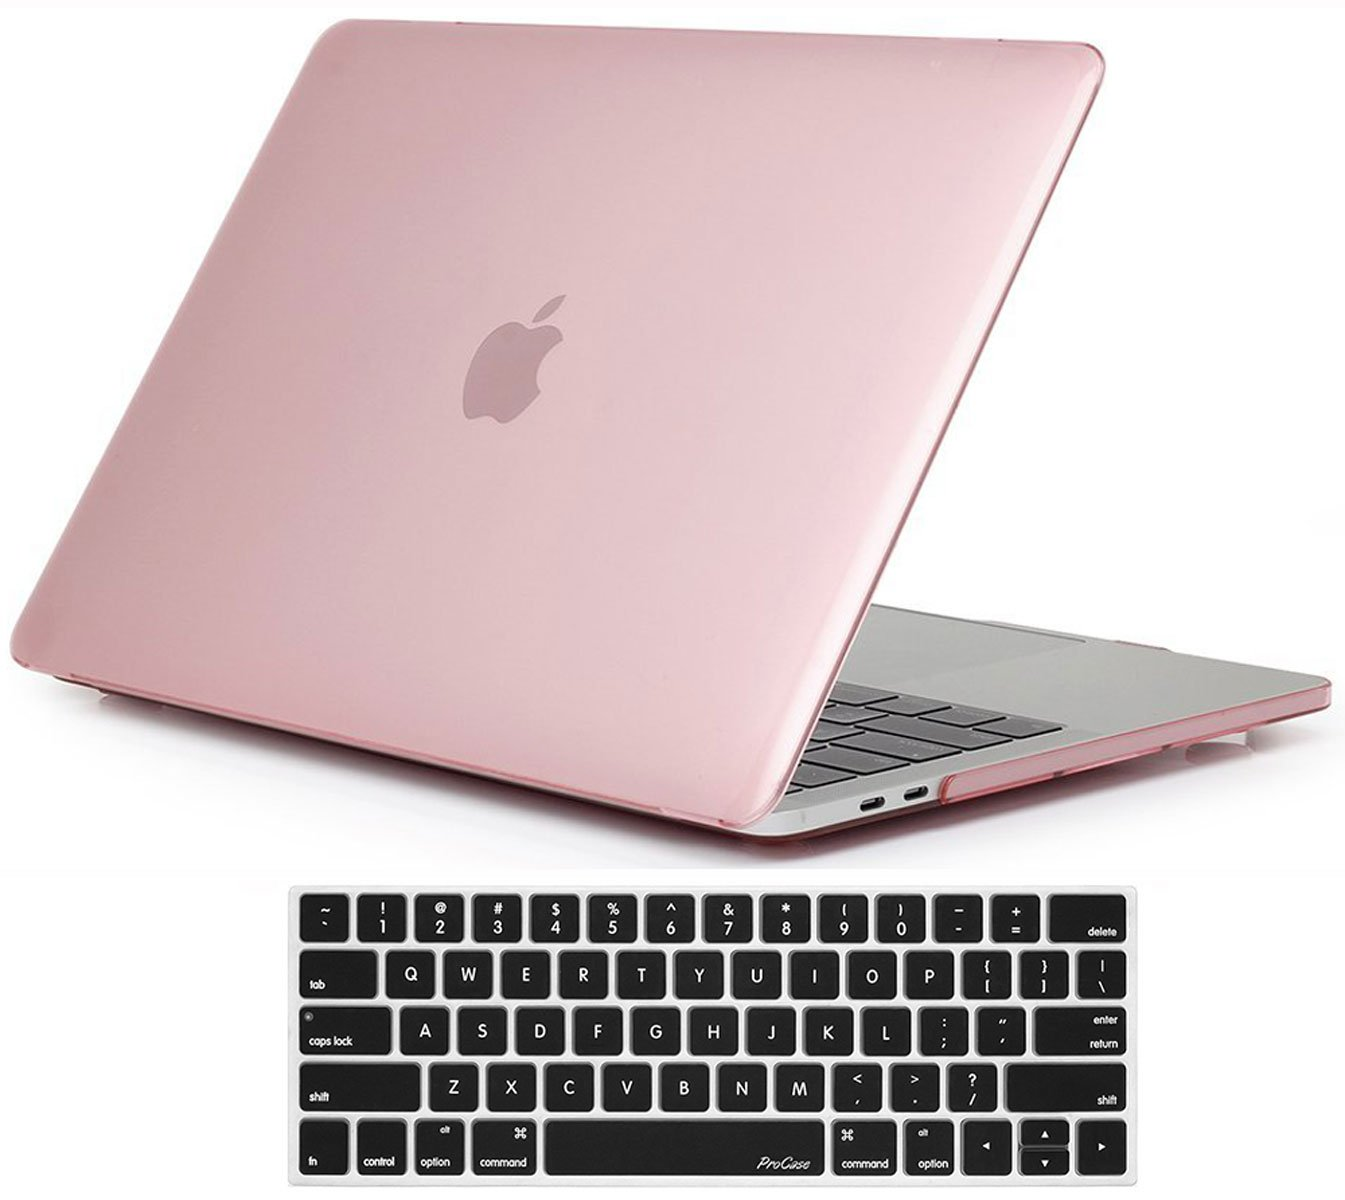 ProCase MacBook Pro 13 Case 2018 2017 2016 Release A1989 A1706 A1708, Hard Case Shell Cover and Keyboard Skin Cover for Apple MacBook Pro 13 Inch with/Without Touch Bar and Touch ID -Clear Pink